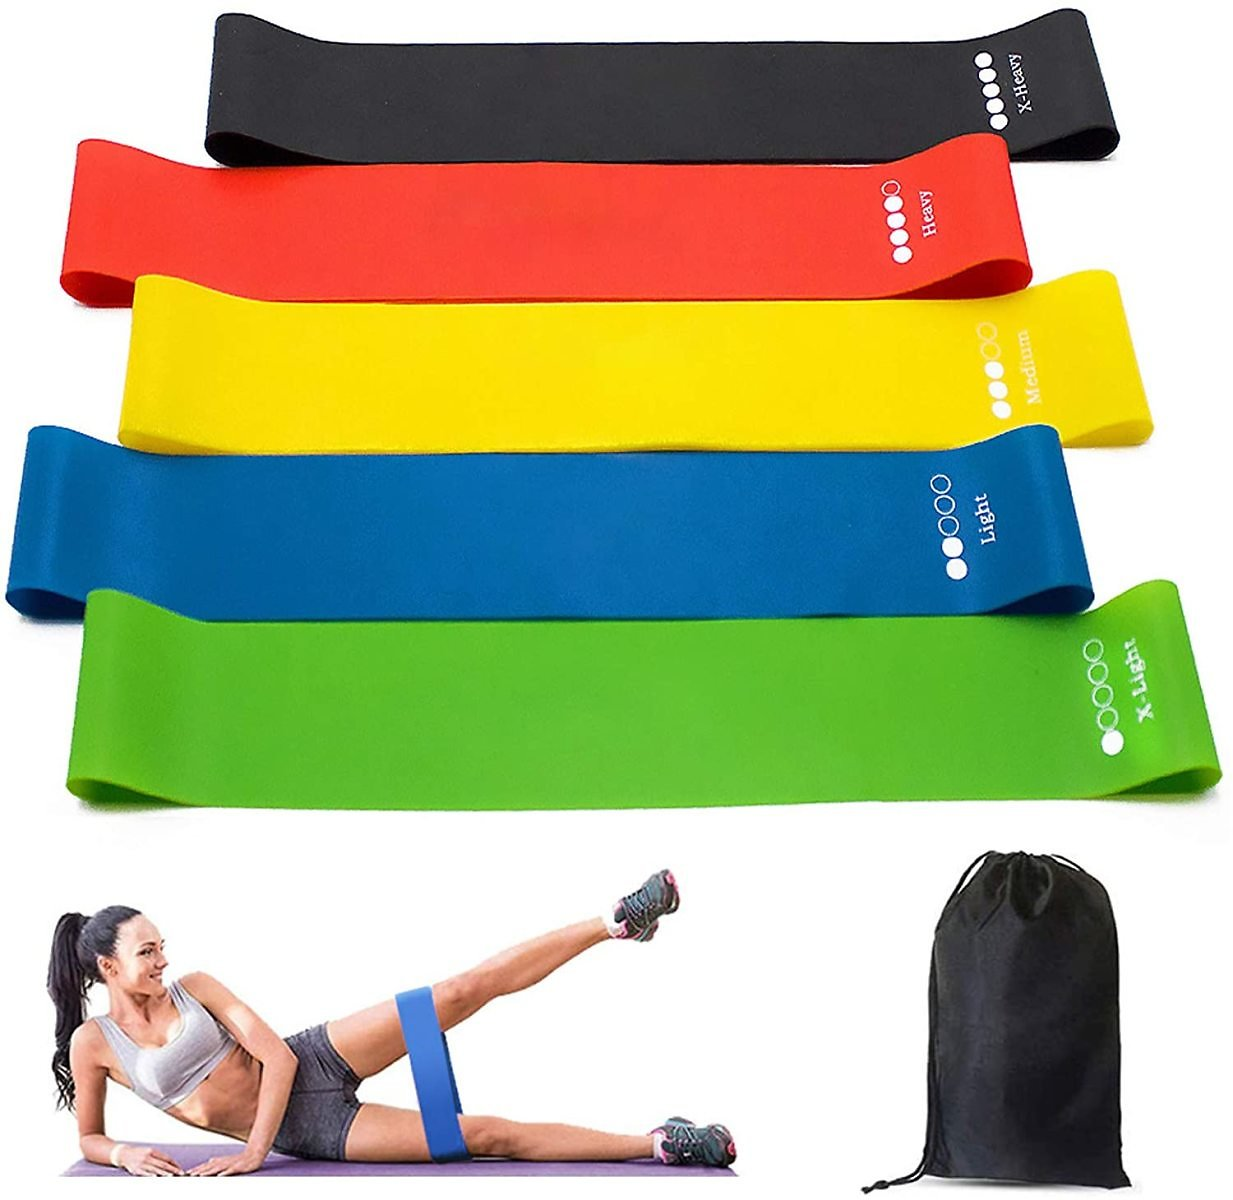 Resistance Bands 5Pcs with Carry Bag for Home Fitness, Stretching, Strength Training, Physical Therapy, Yoga, Pilates